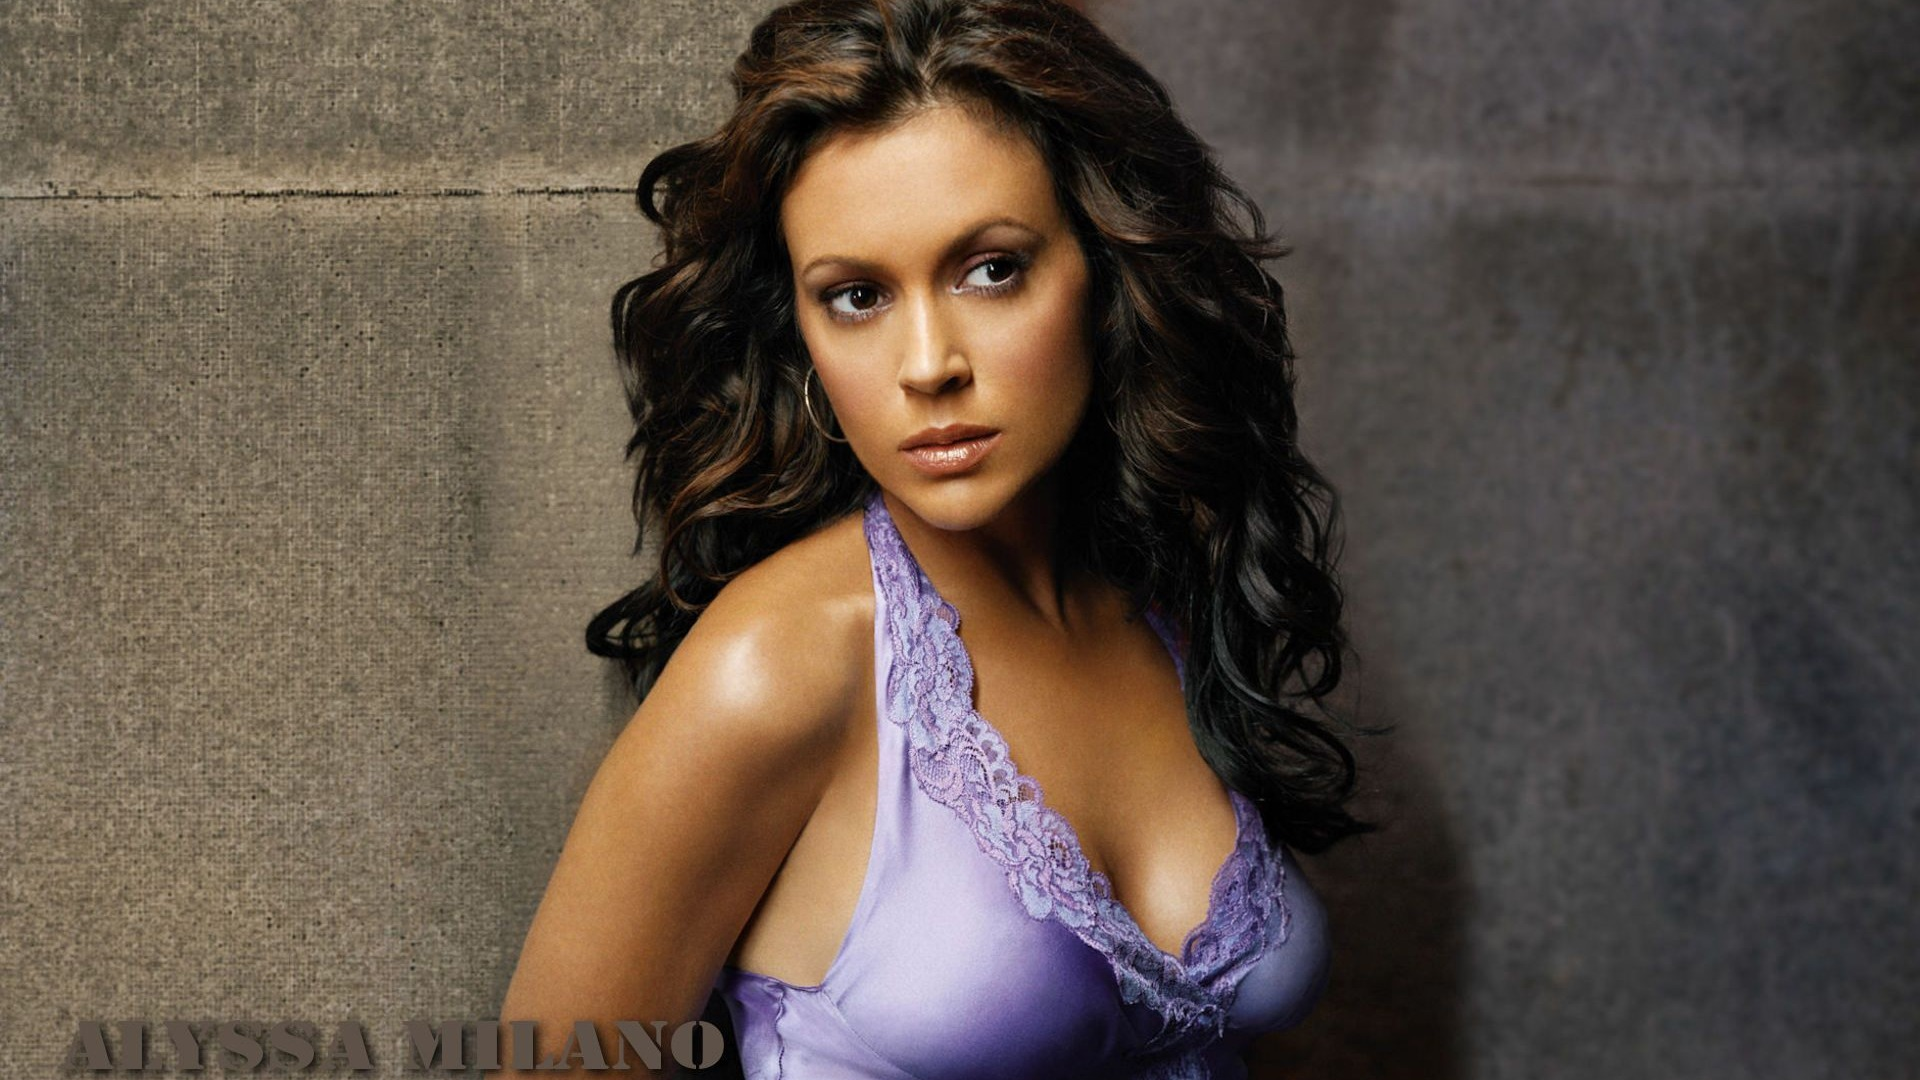 Alyssa Milano #030 - 1920x1080 Wallpapers Pictures Photos Images